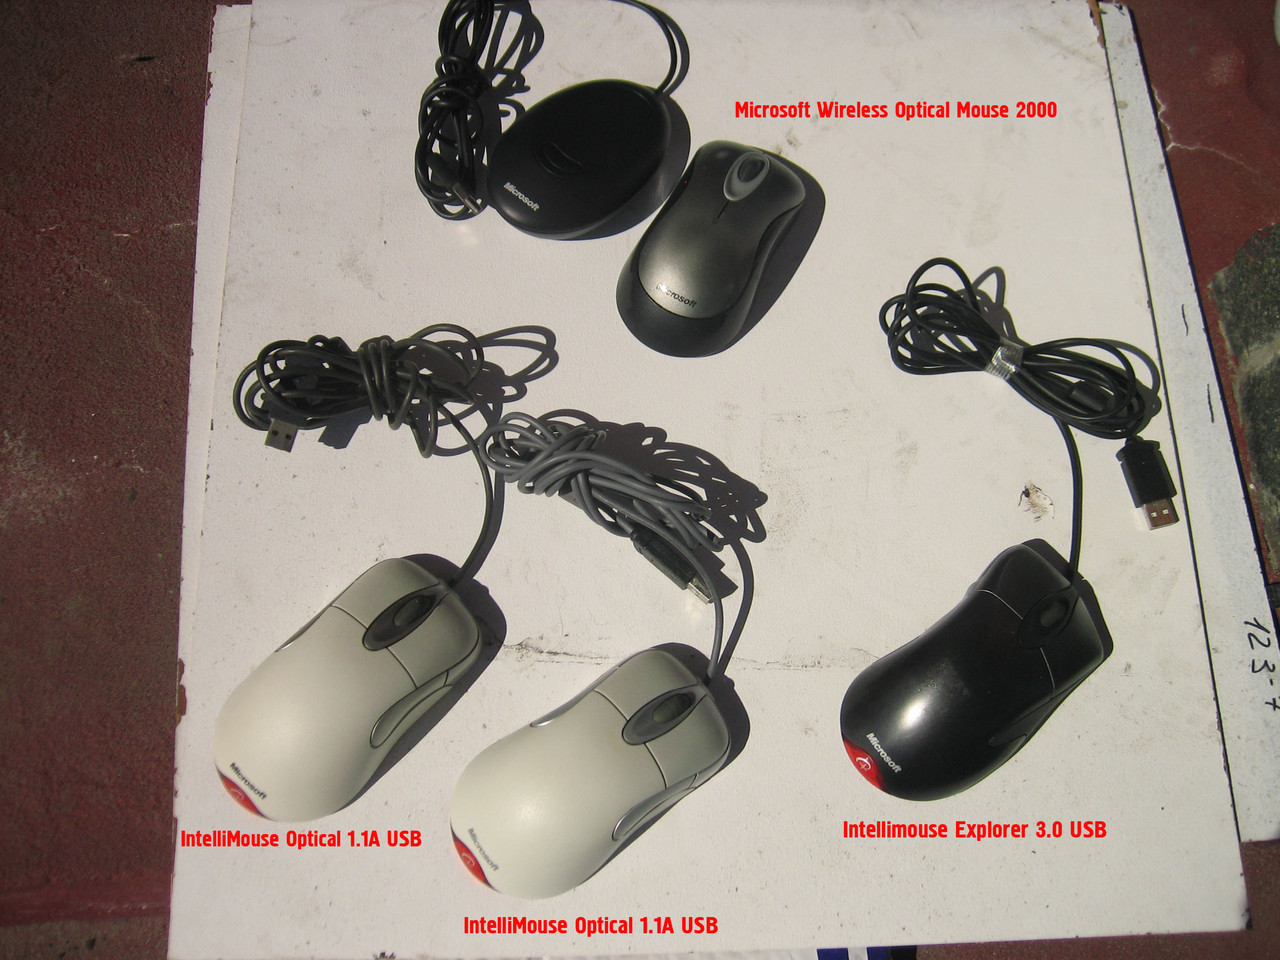 INTELLIMOUSE OPTICAL 1.1A USB DRIVERS FOR WINDOWS VISTA